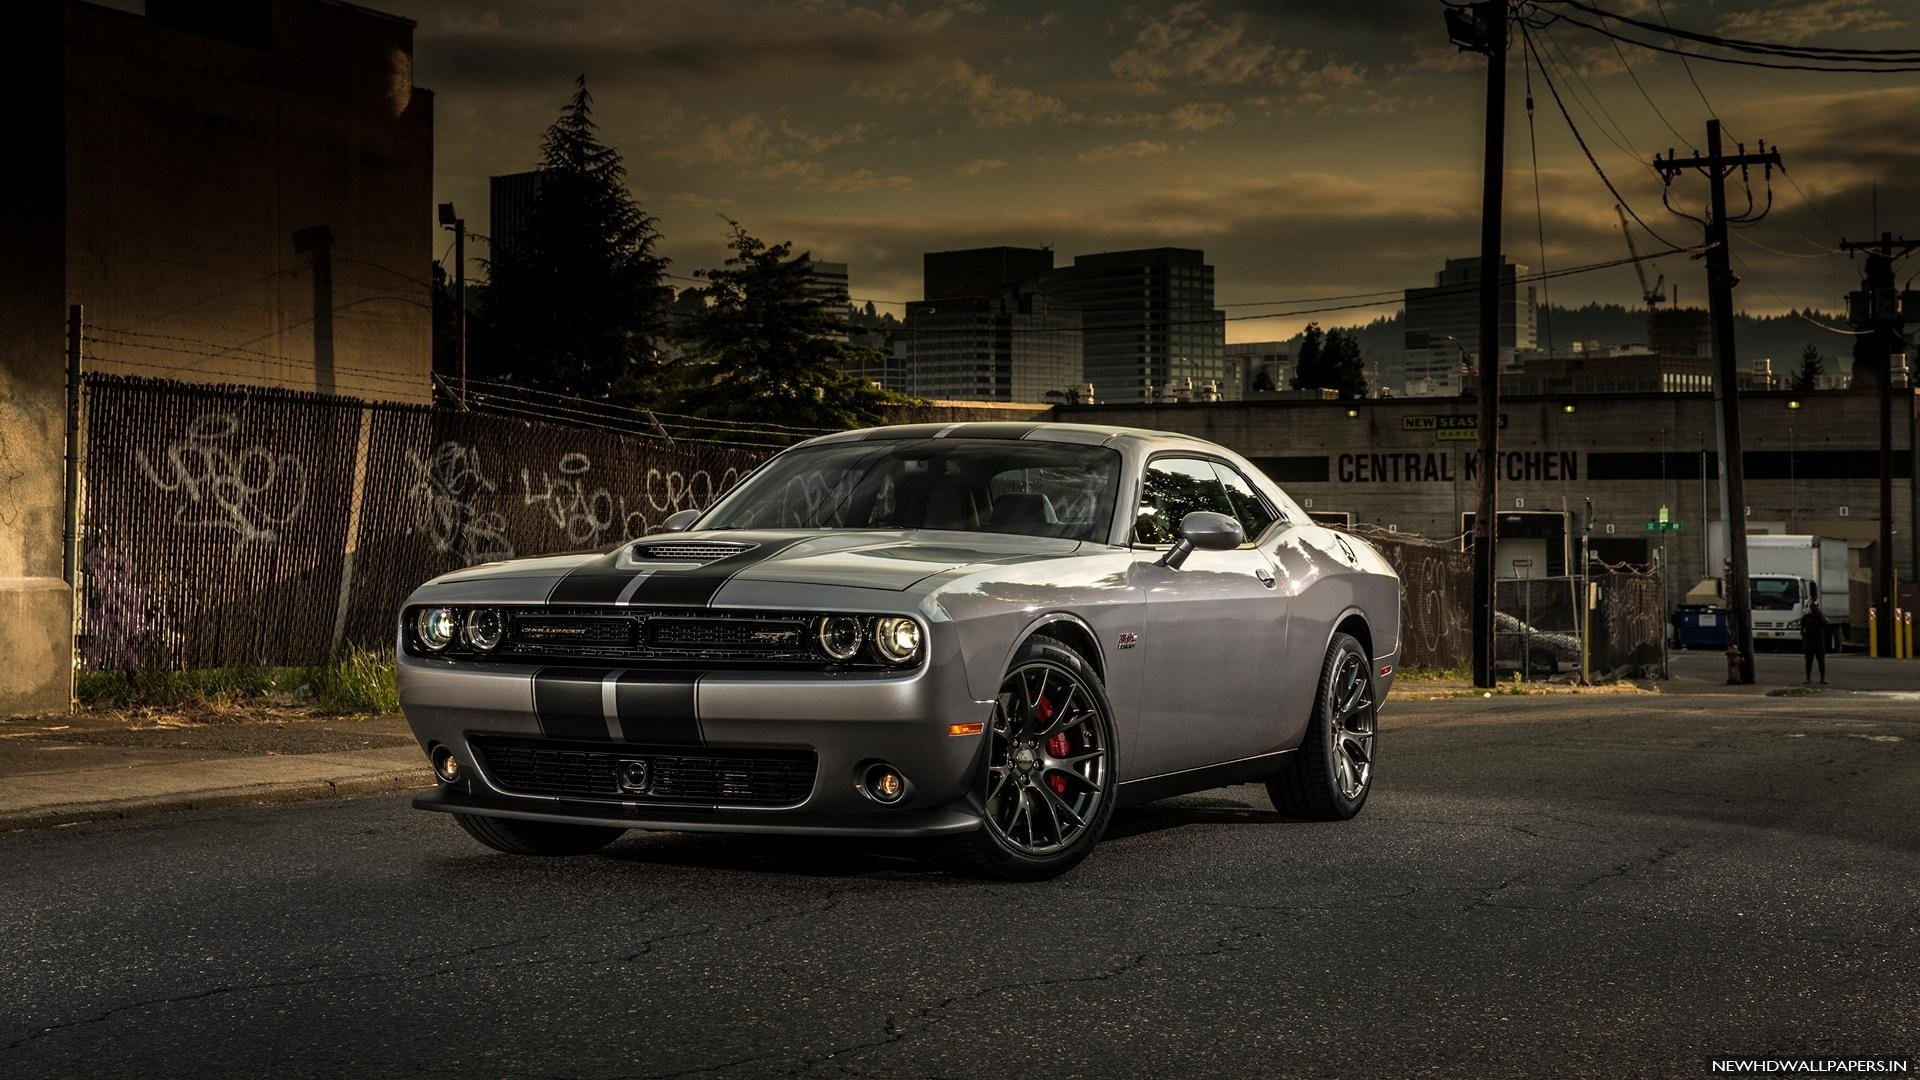 HD Dodge Challenger Wallpapers WallpaperSafari